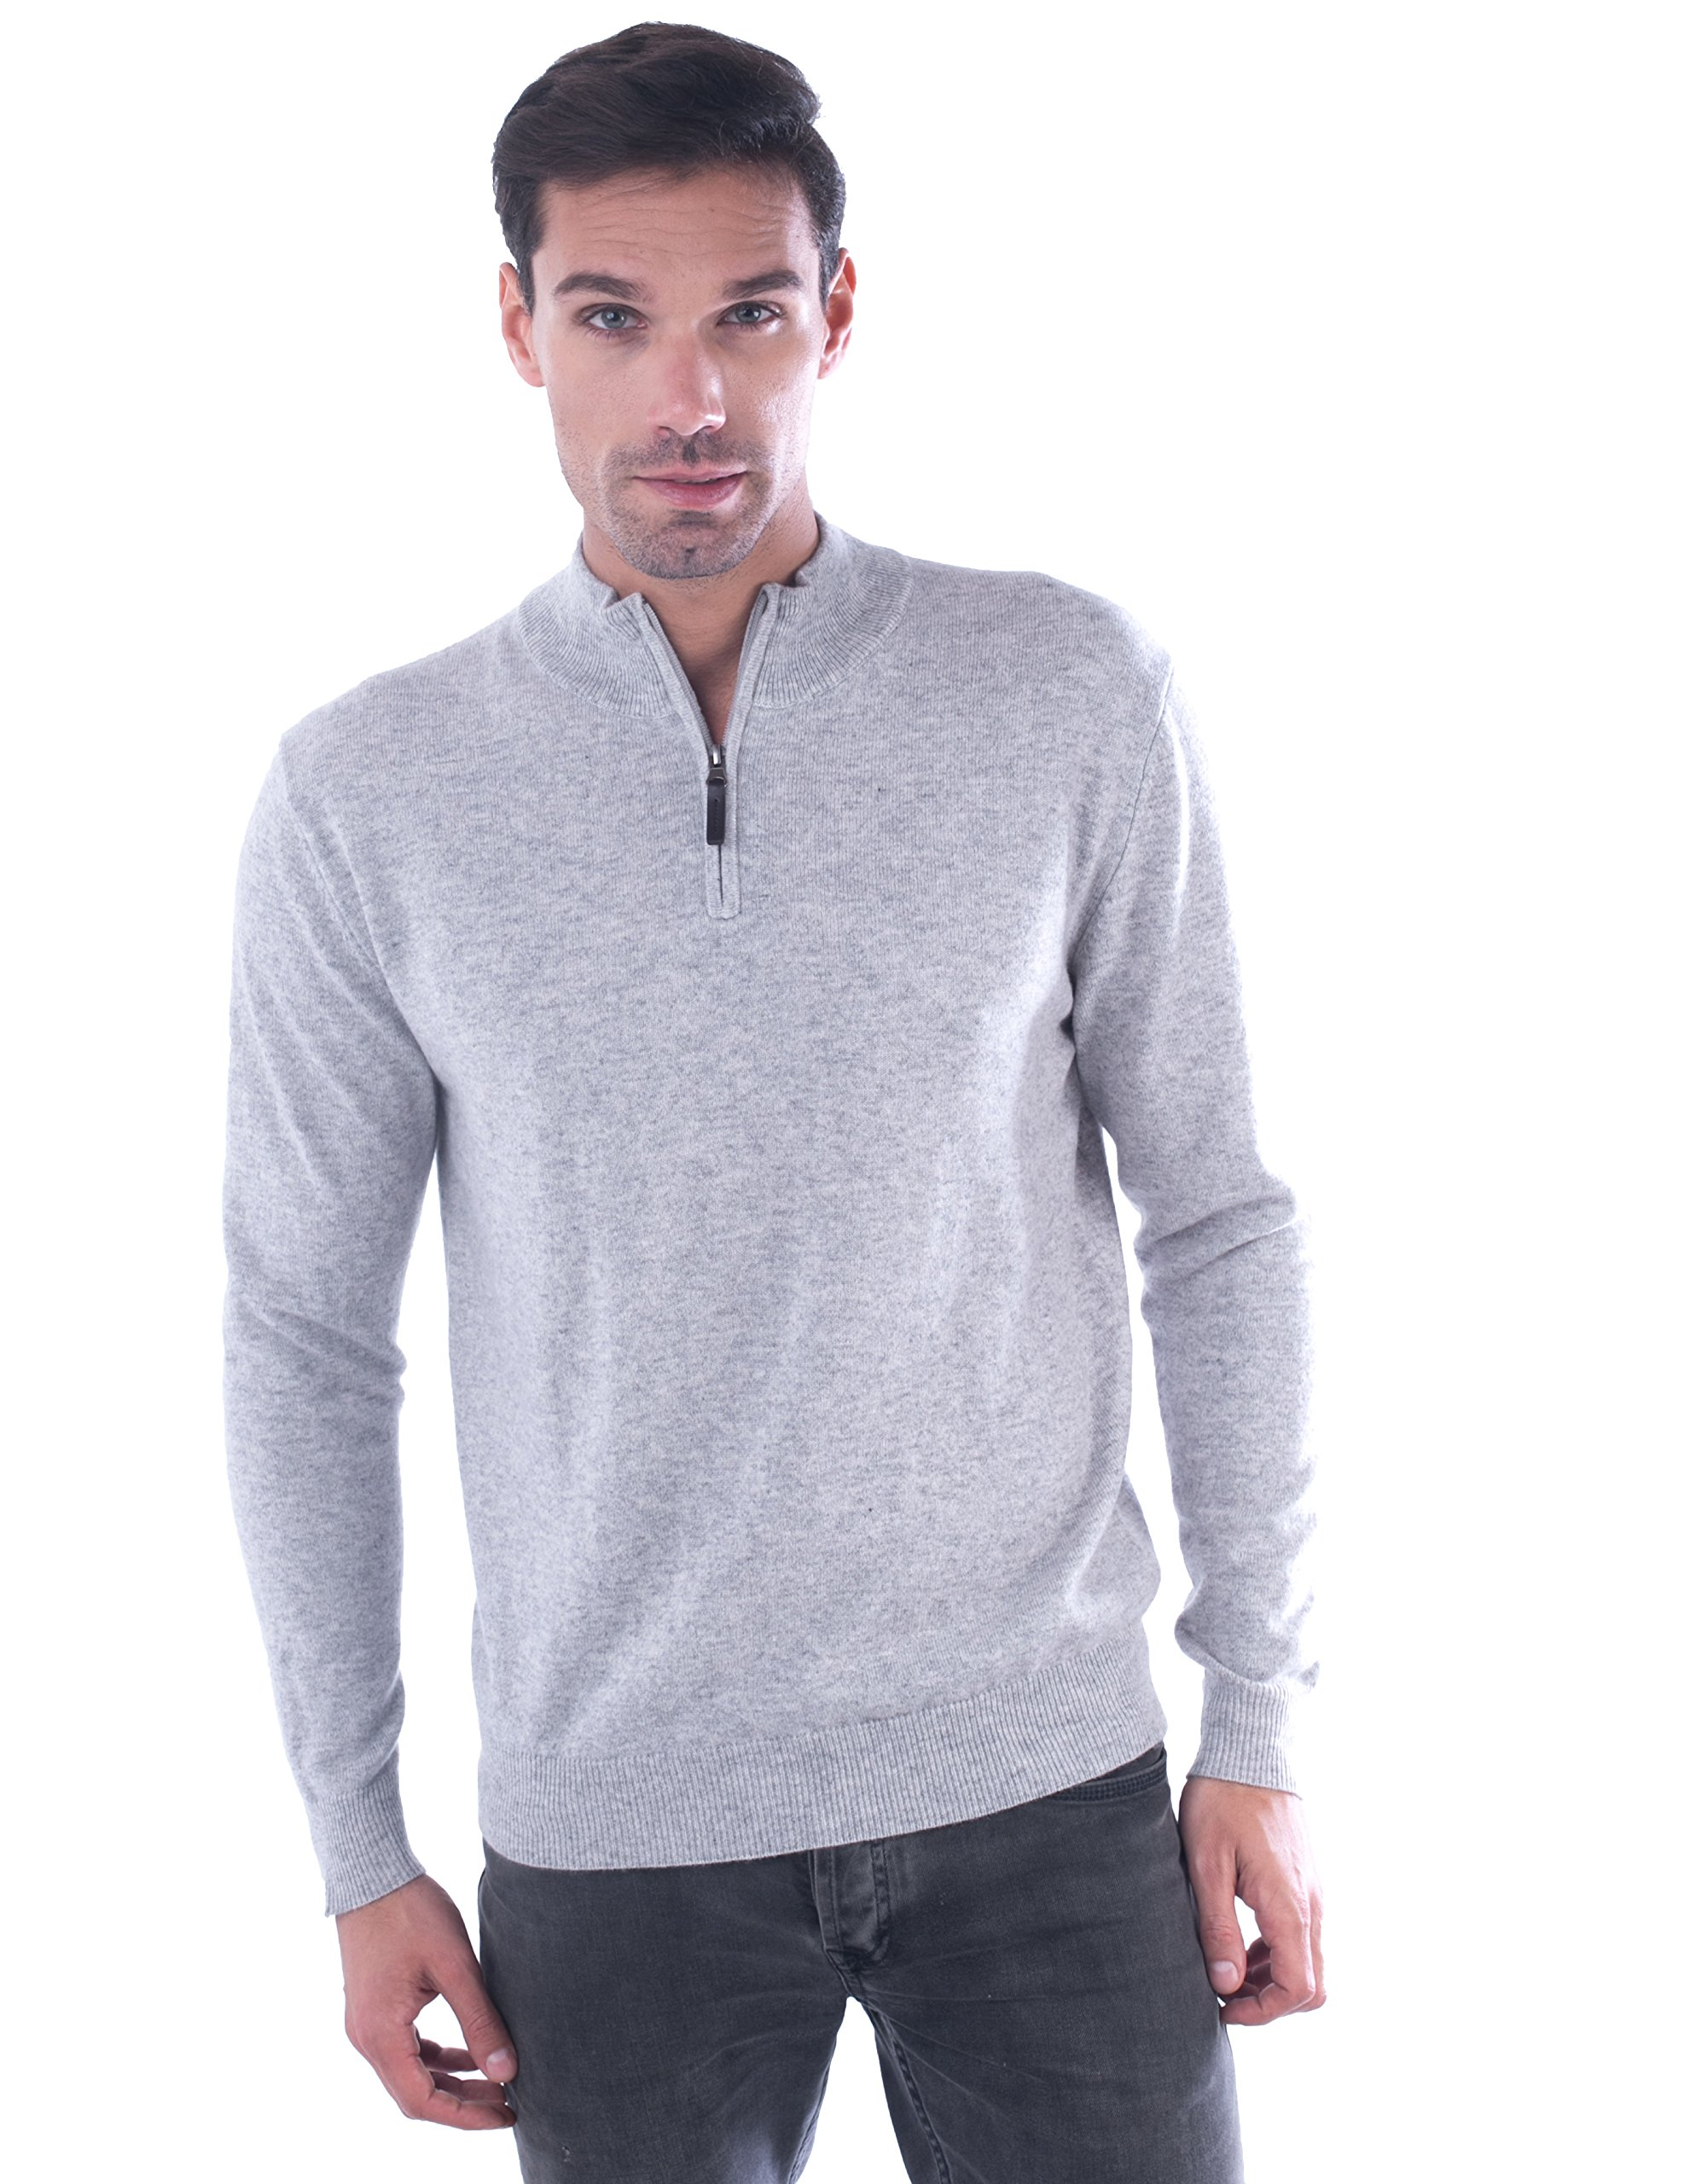 cashmere 4 U Men's 100% Cashmere Sweater Zipped Collar Pullover With Elbow Patch